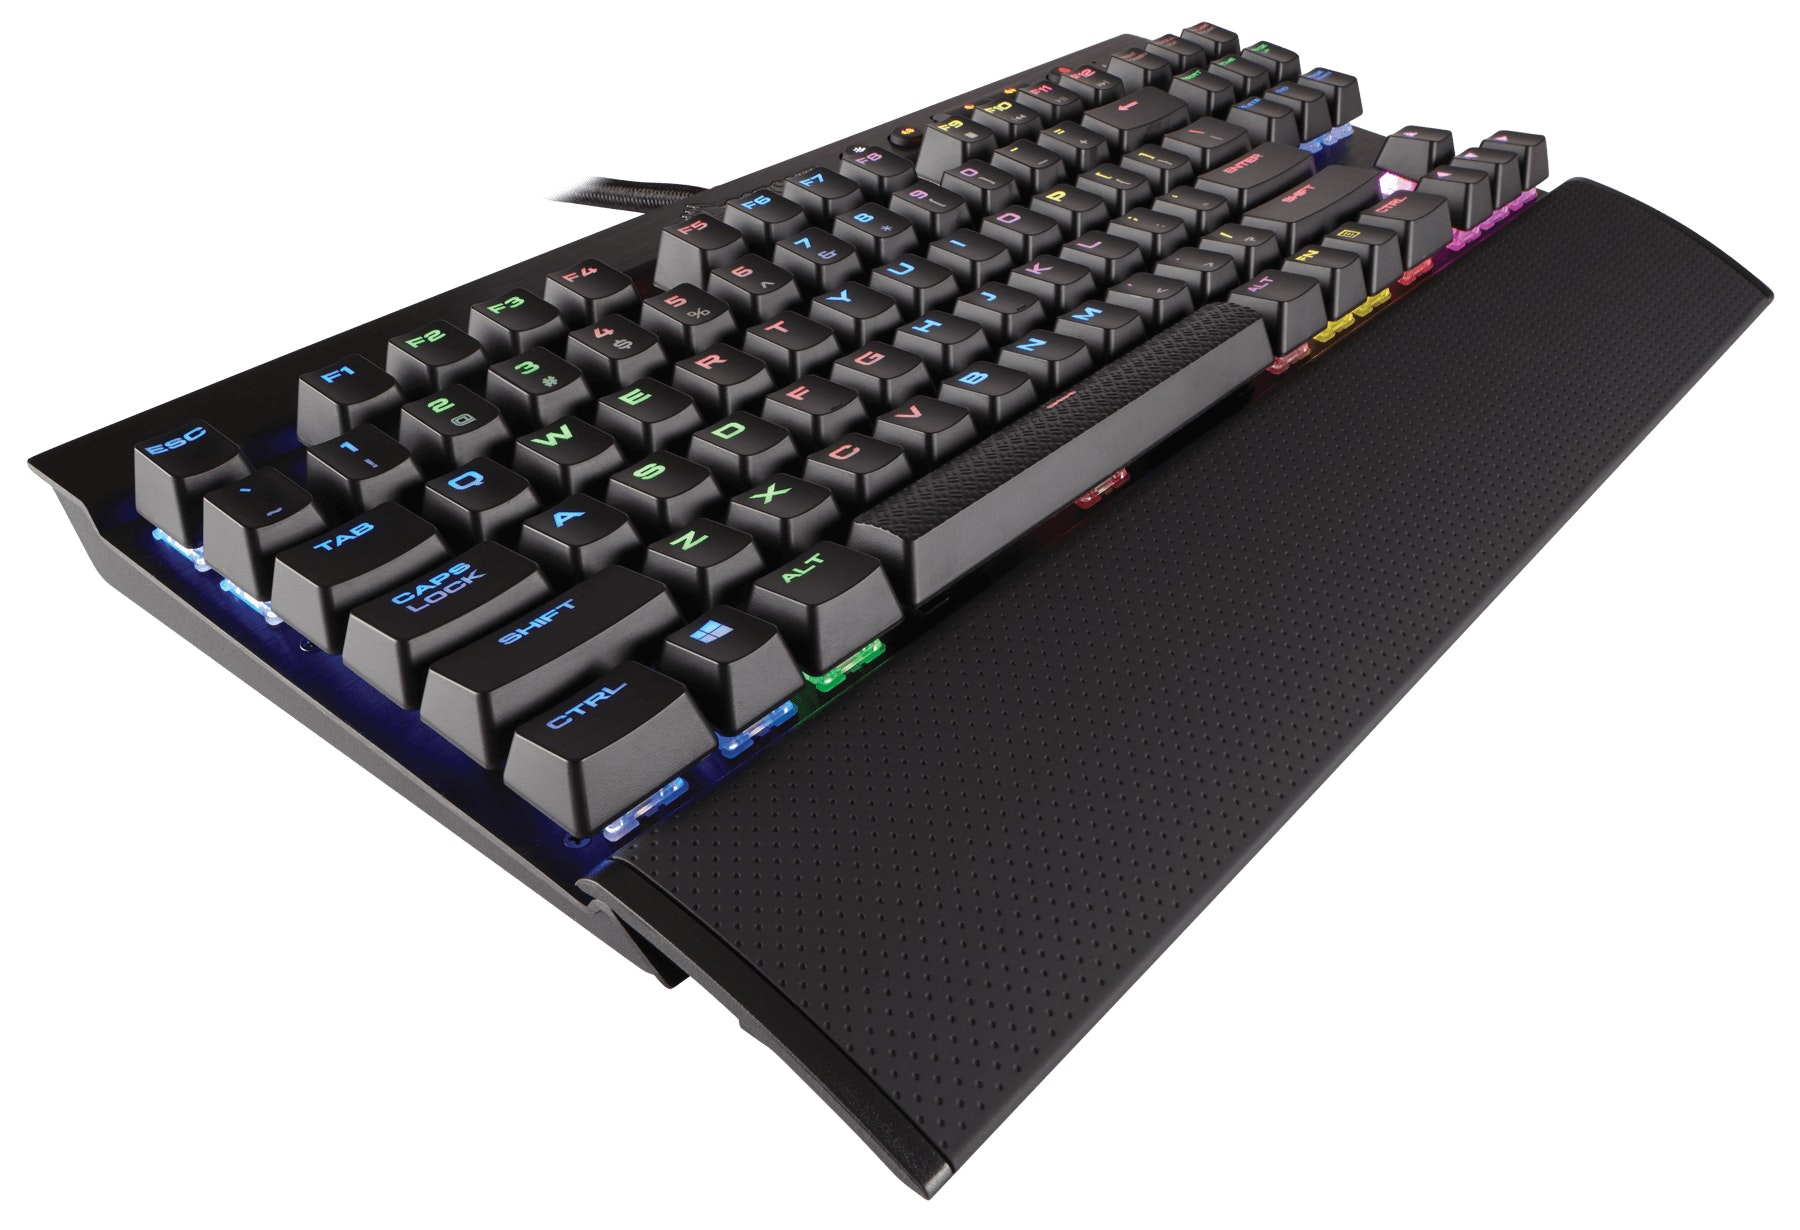 Corsair K65 RGB RAPIDFIRE — Cherry MX Speed RGB